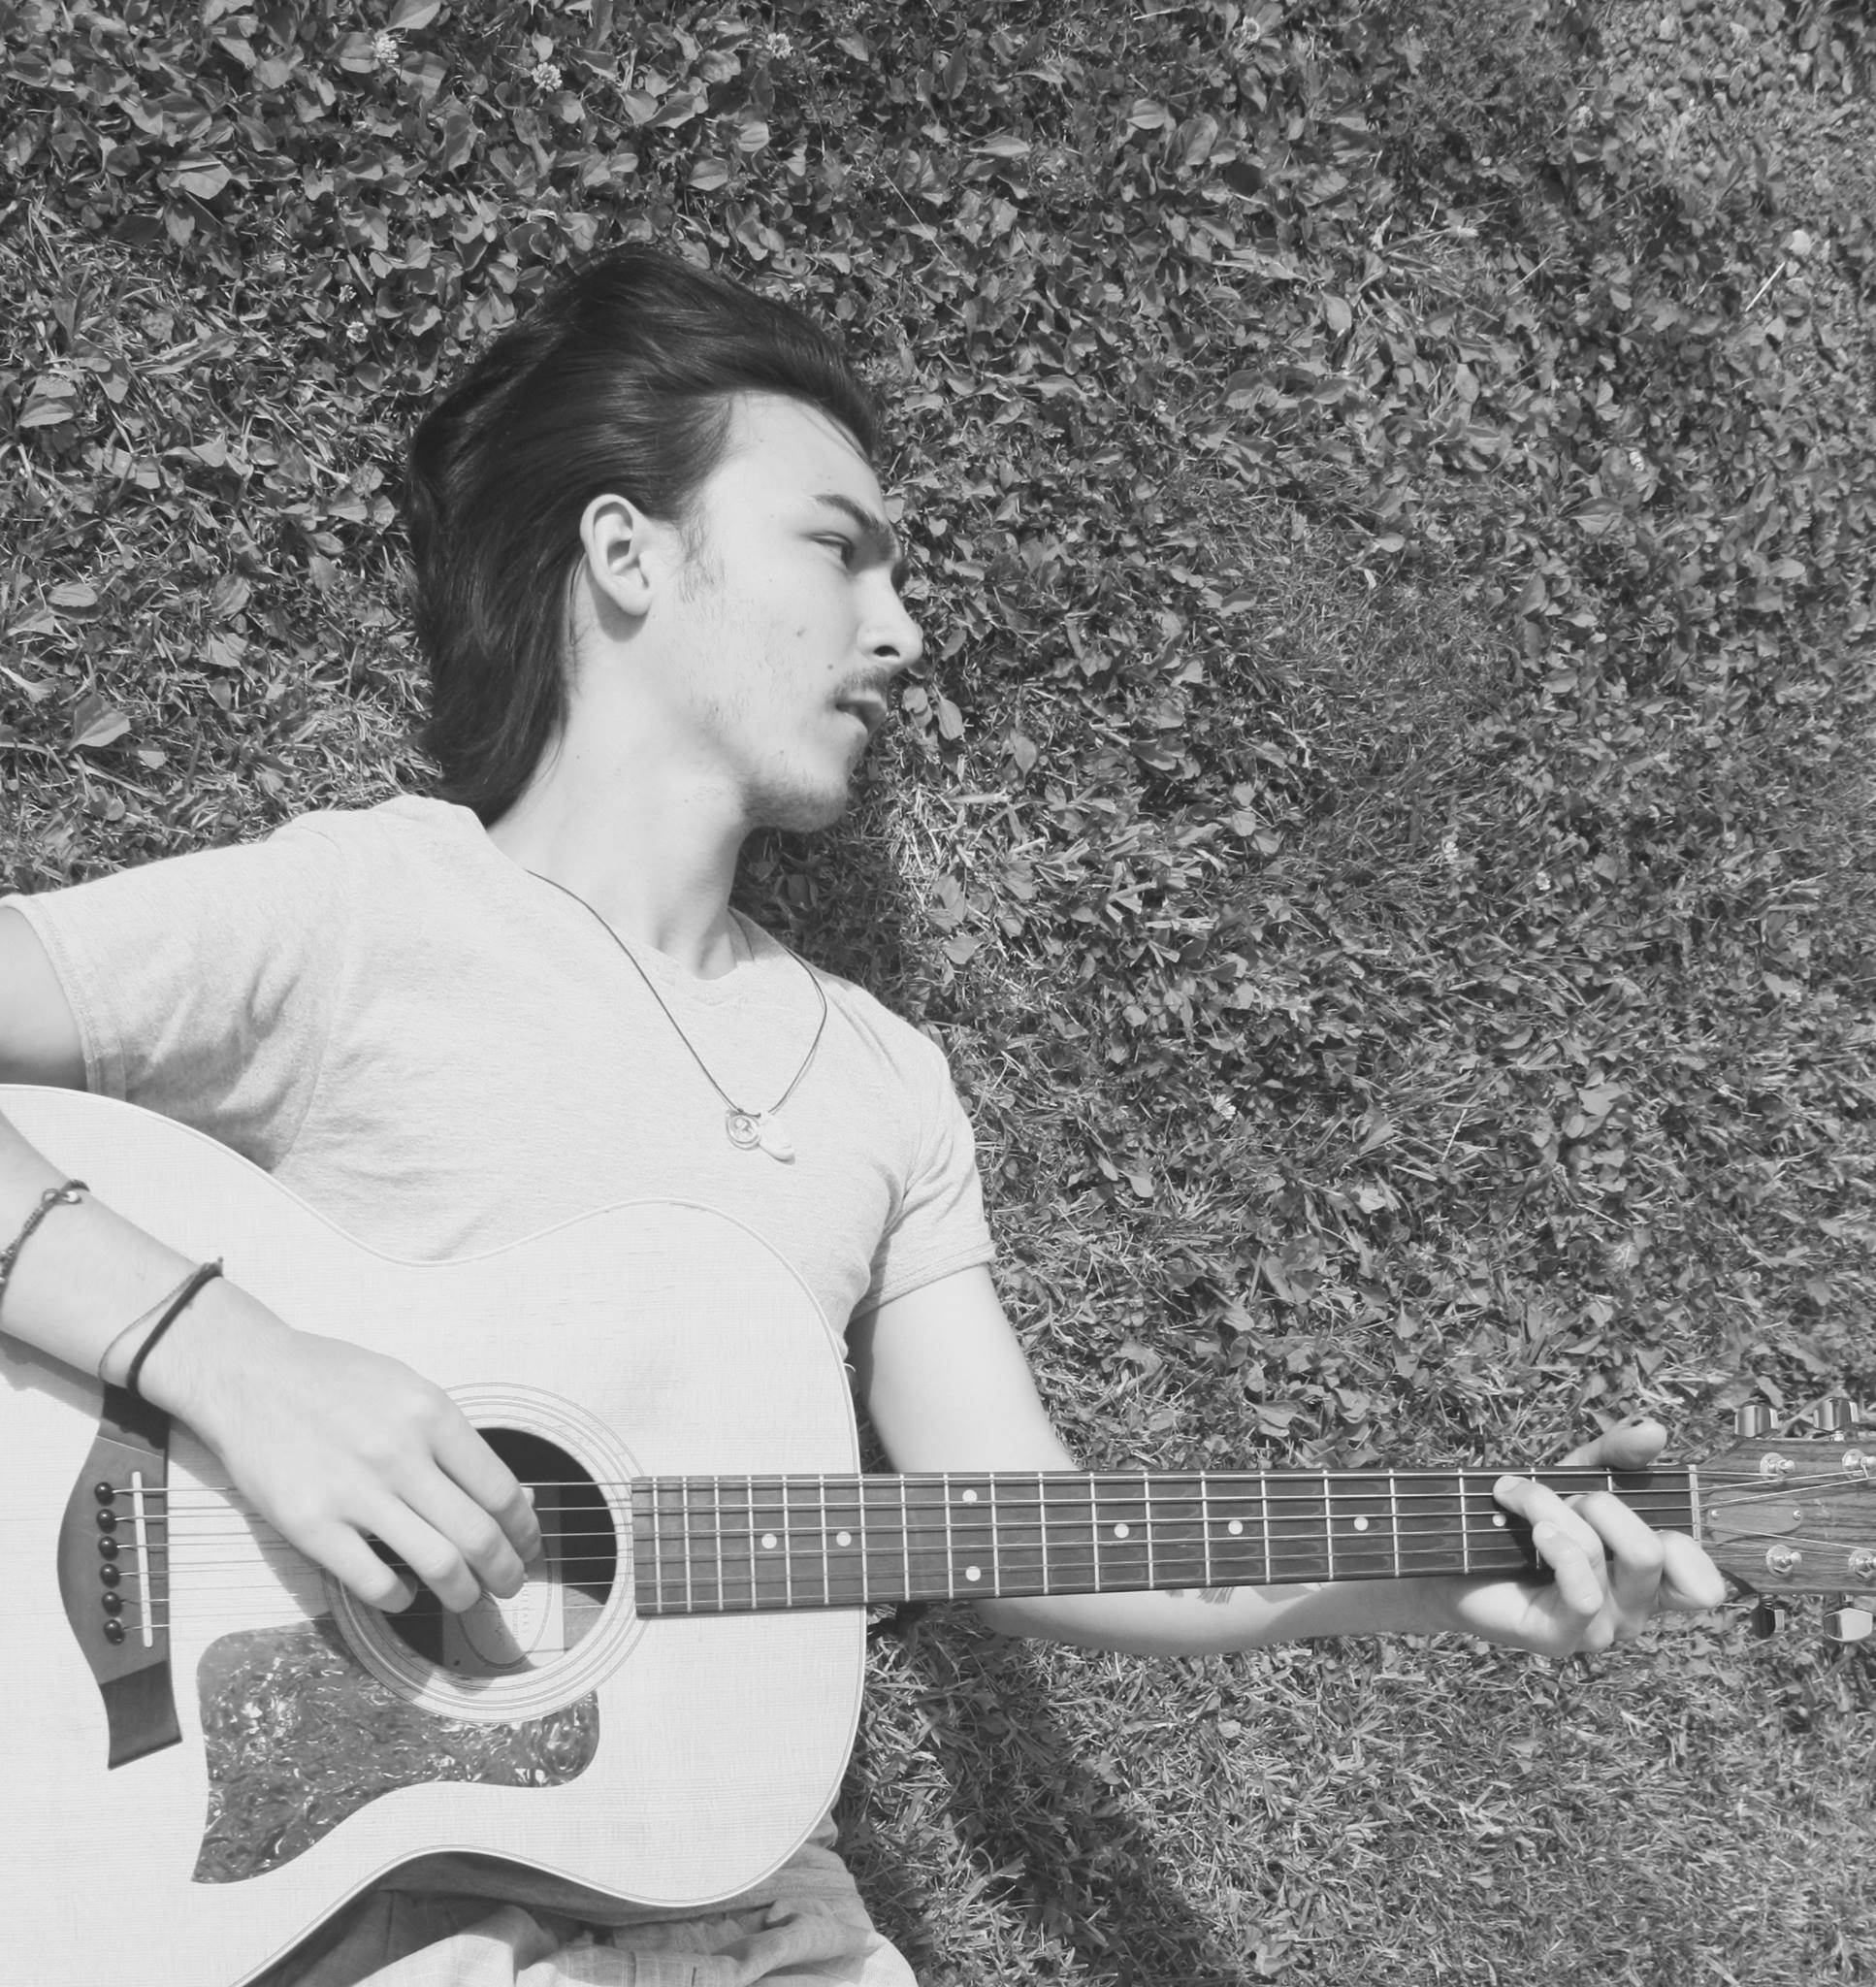 Halla    Bio-- Henry Nozuka is a Singer Songwriter from Toronto. Growing up in a musical family he began writing songs at an early age. He is getting ready to release his first album in the new year.